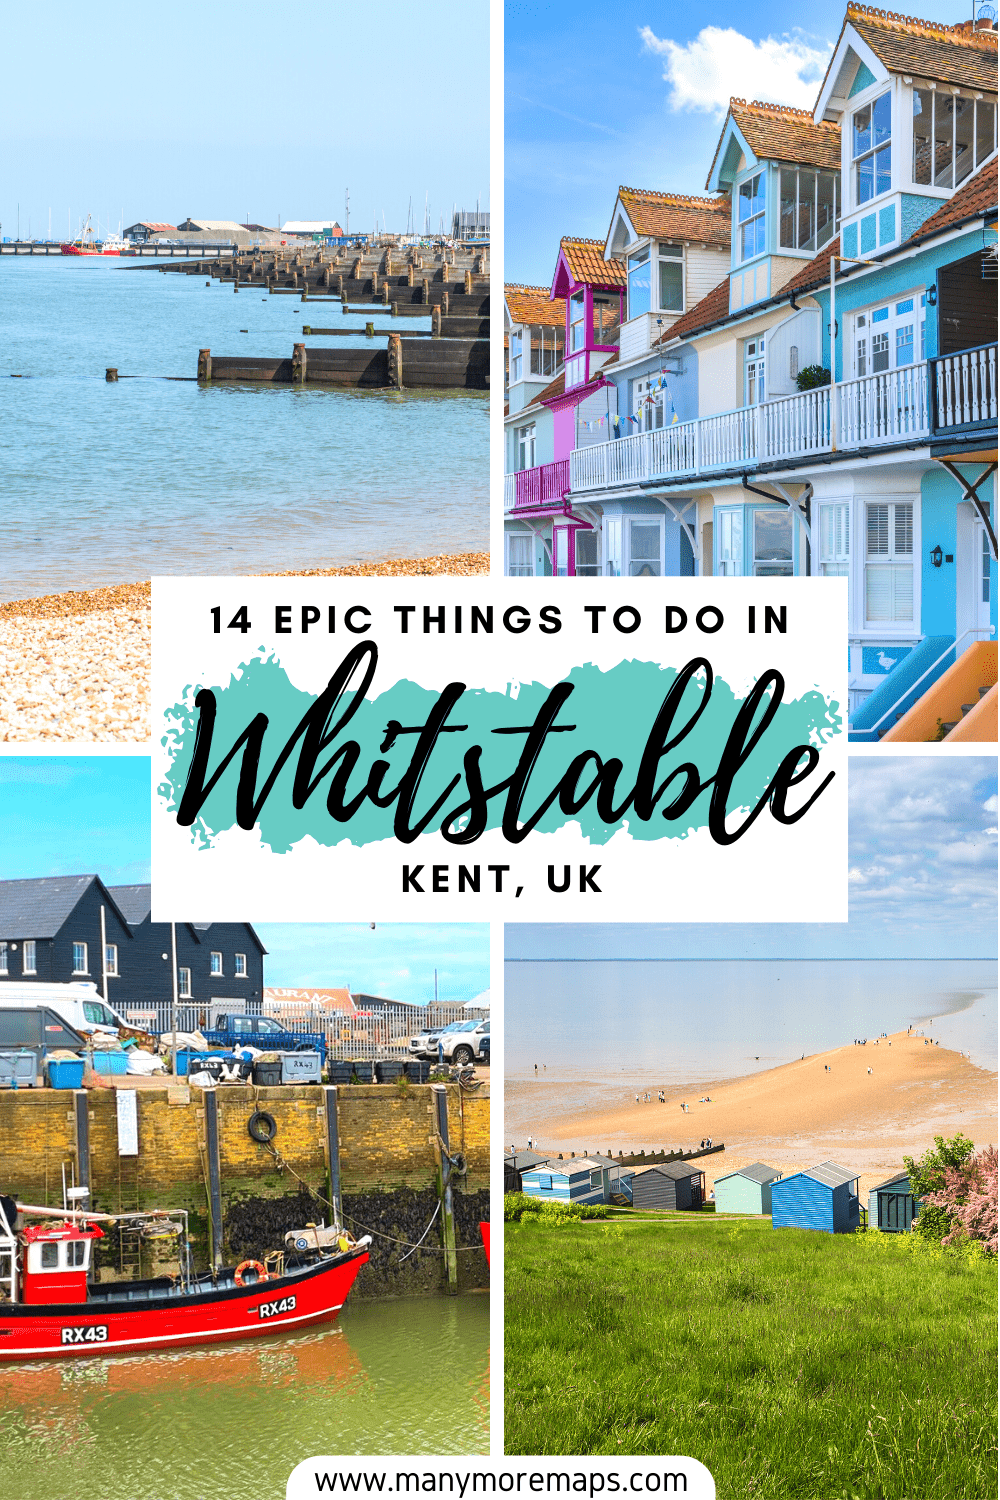 The very best things to do in Whitstable, Kent, one of the best day trips from London. Explore the Kent coast during one day or a weekend in Whitstable. Check out the Whitstable beaches, the Whitstable oysters, explore the Kent beaches, castles and best cafes and restaurants. Whitstable Harbour Kent England, Kent seaside towns, Whitstable beach huts, what to do in Whitstable, things to do near Canterbury, Whitstable Oyster Company, Whitstable castle